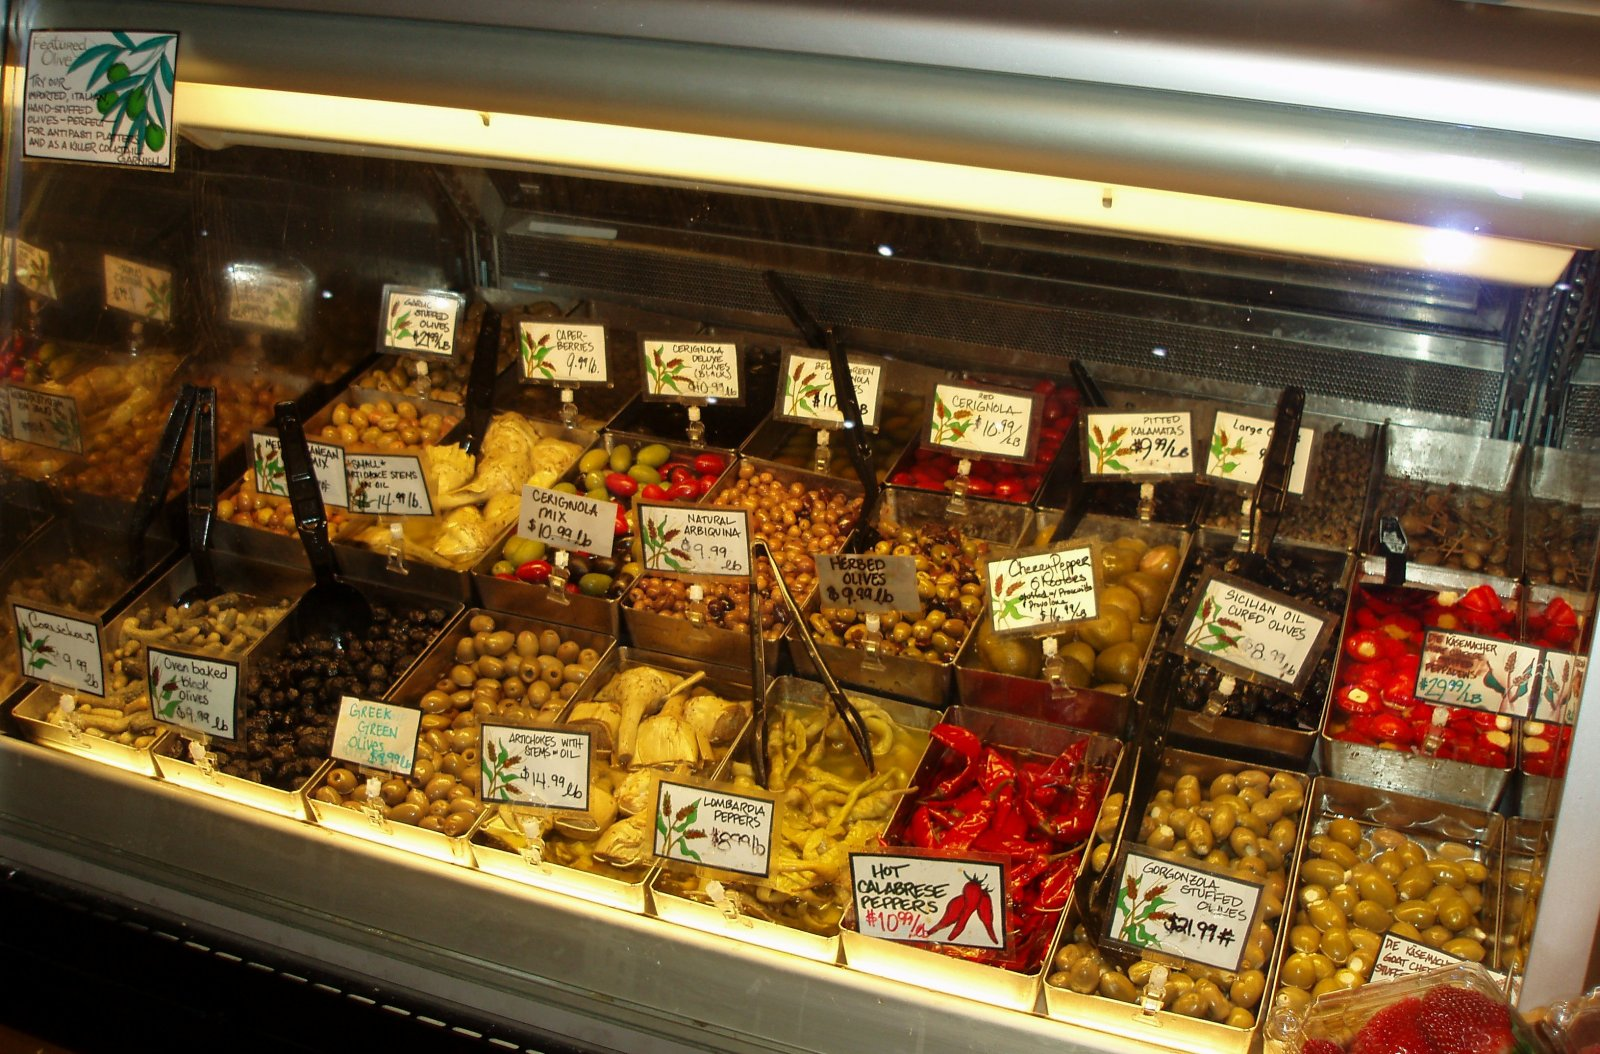 Olive fanciers might have a difficult time choosing just one selection from the deli case.